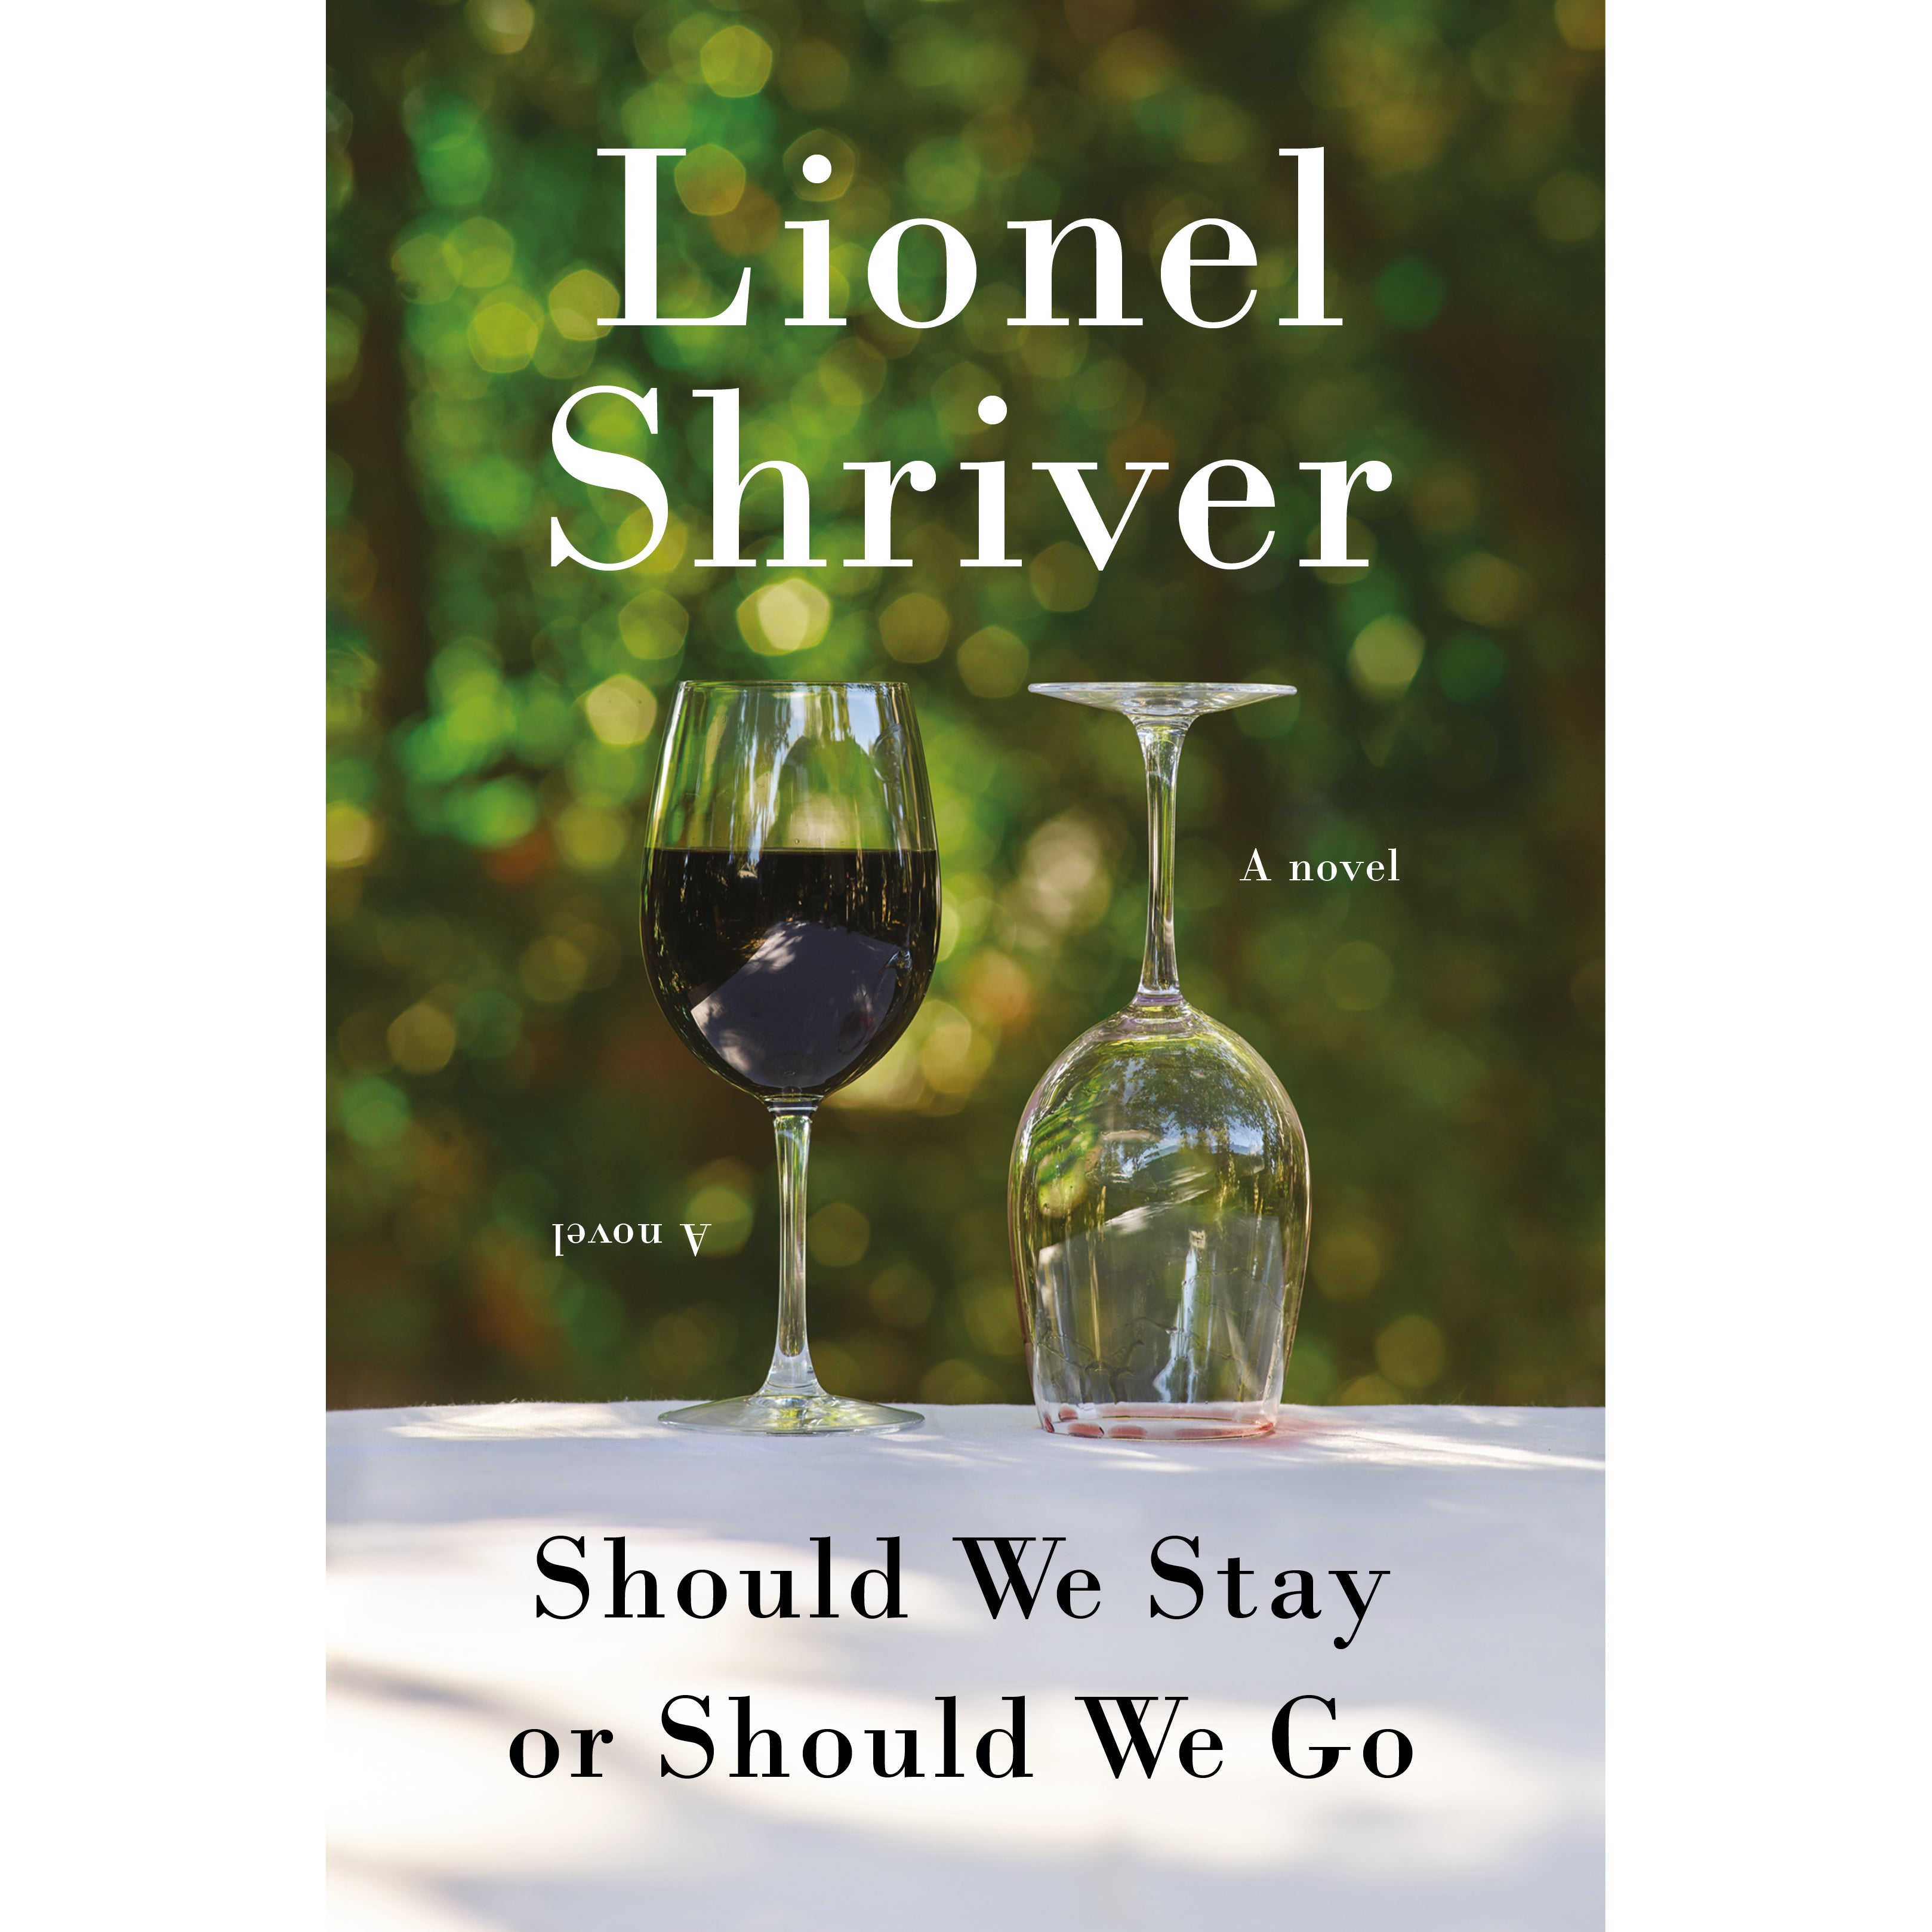 Should We Stay Or Should We Go by Lionel Shriver